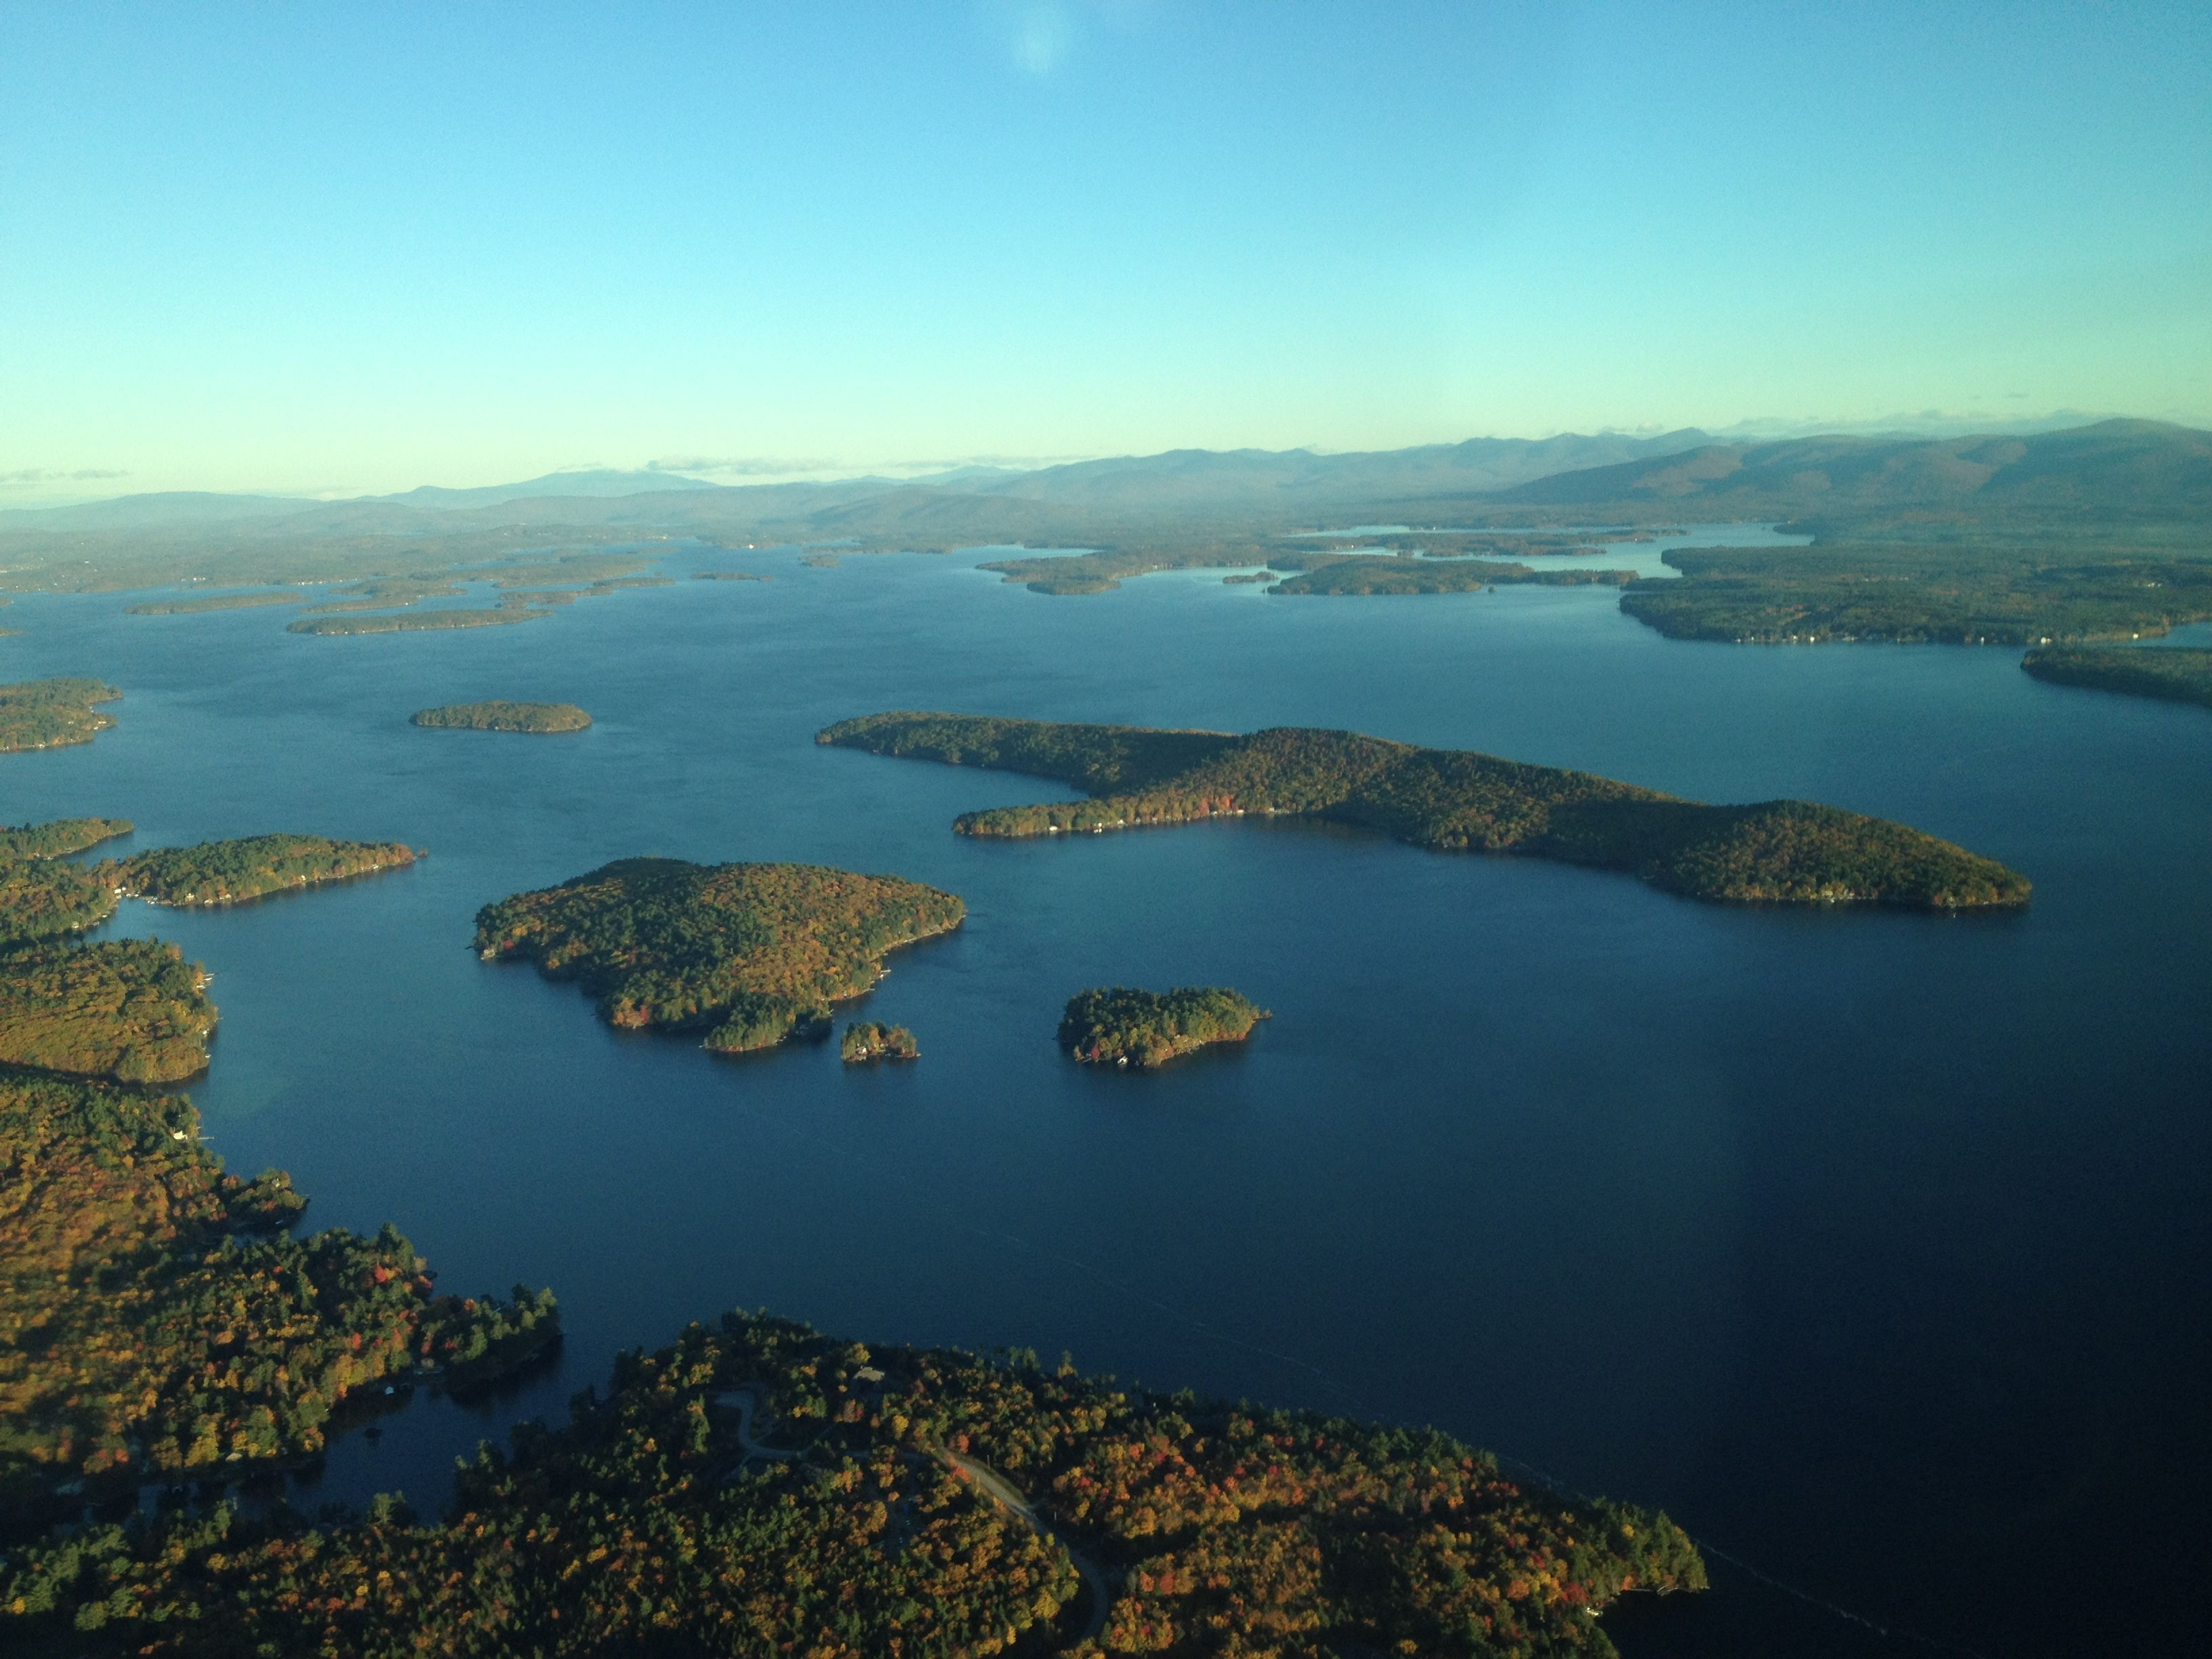 flying over lake winnipesaukee new hampshire today the long island in the background is. Black Bedroom Furniture Sets. Home Design Ideas